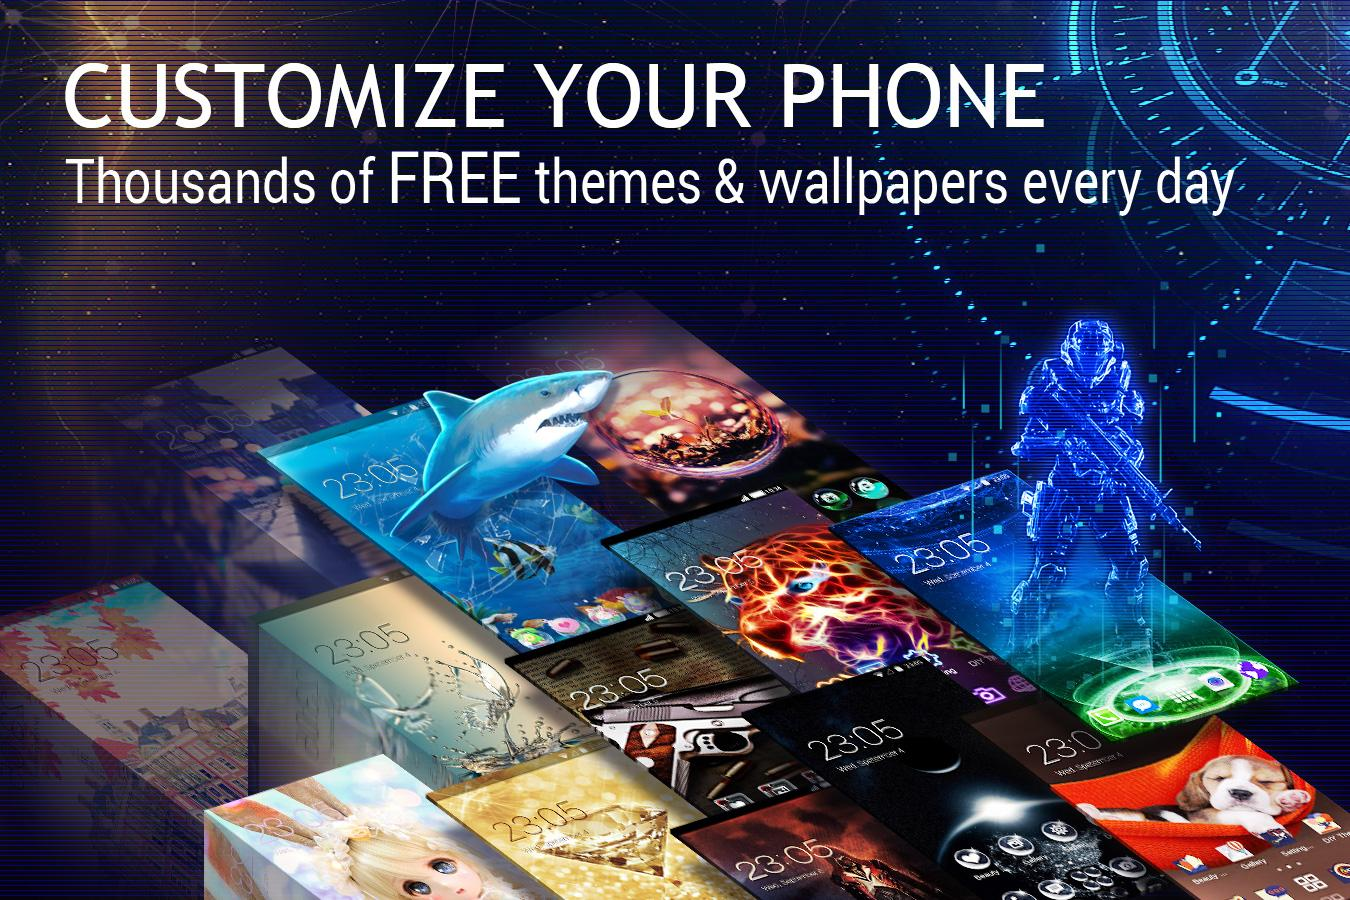 U Launcher 3D – Live Wallpaper, Free Themes, Speed- screenshot